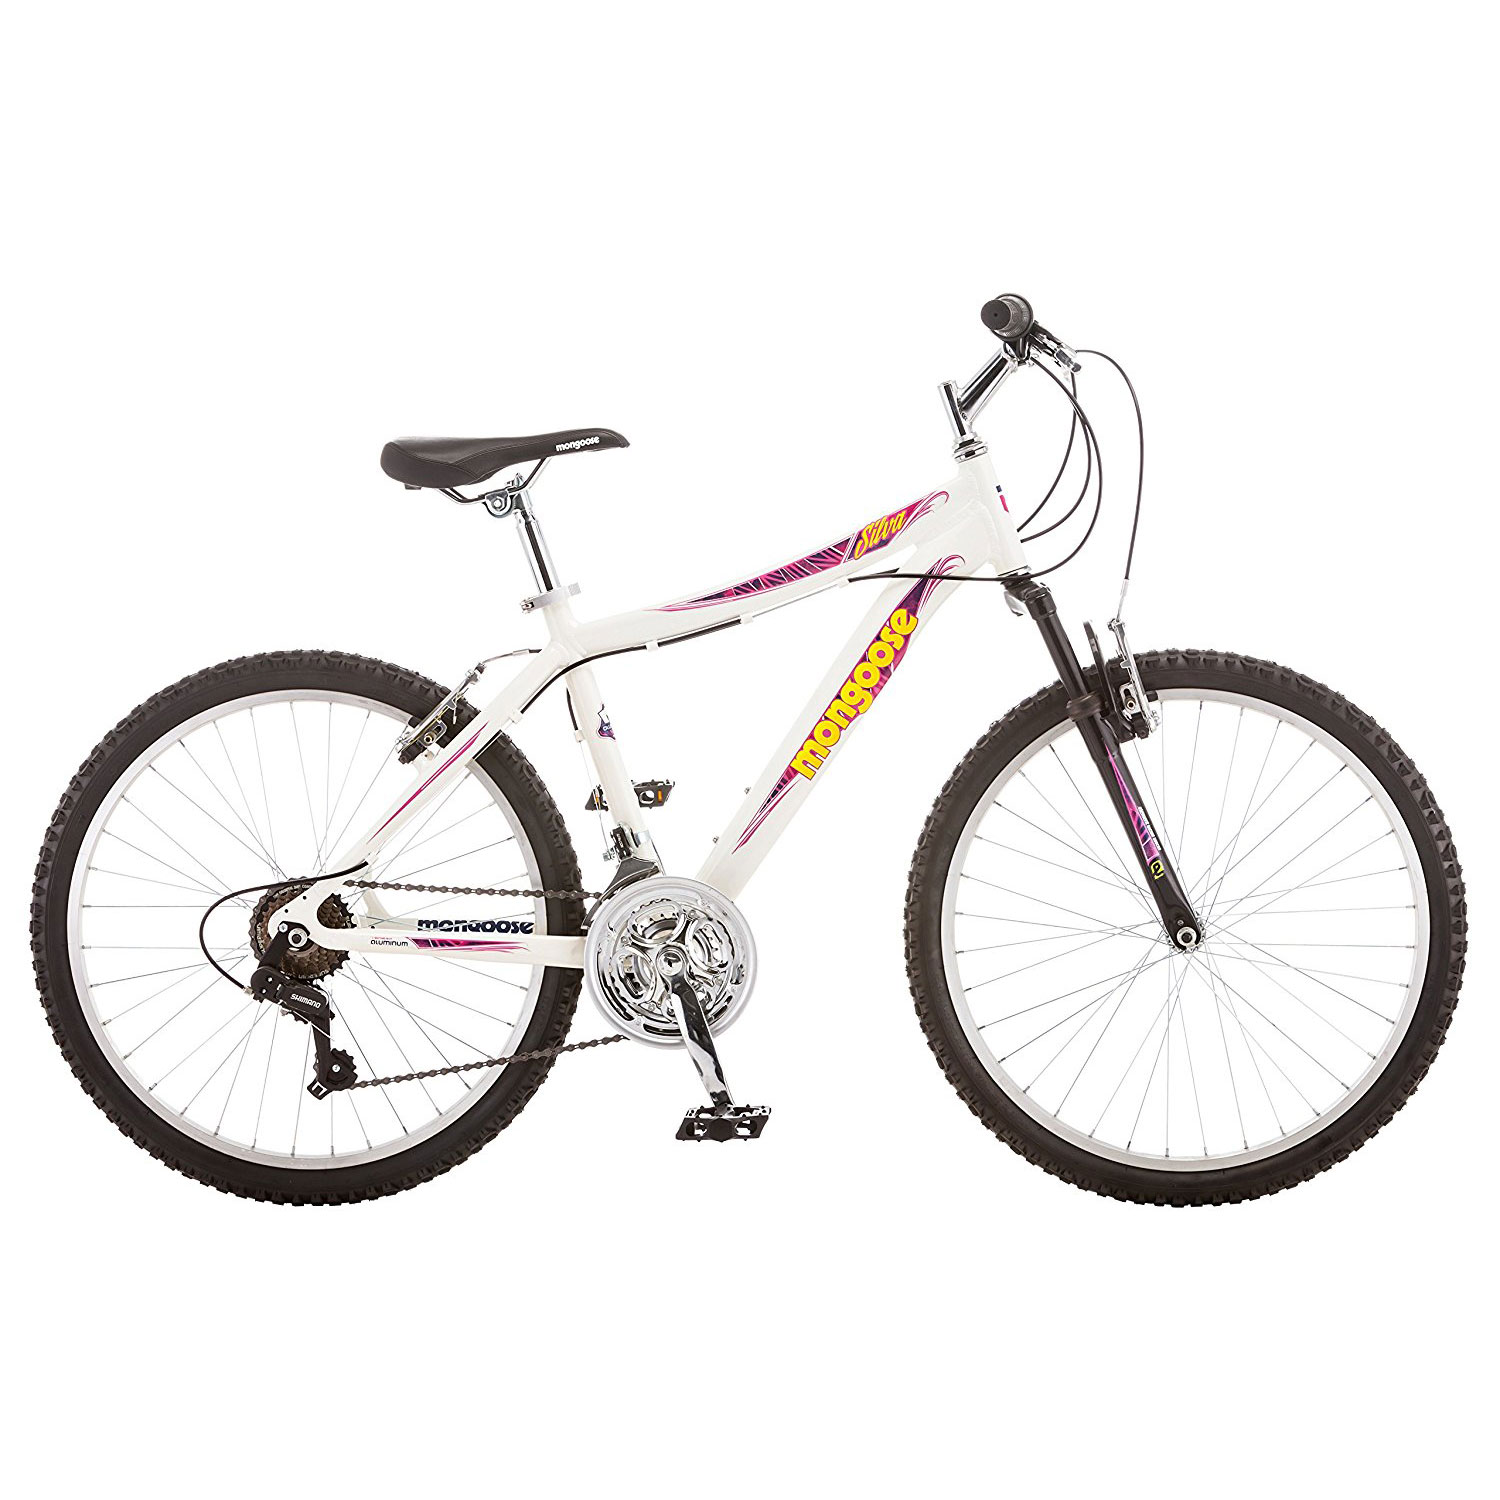 Mongoose Boys 13 Inch Aluminum Mech Mountain Bicycle with 24 Inch ...